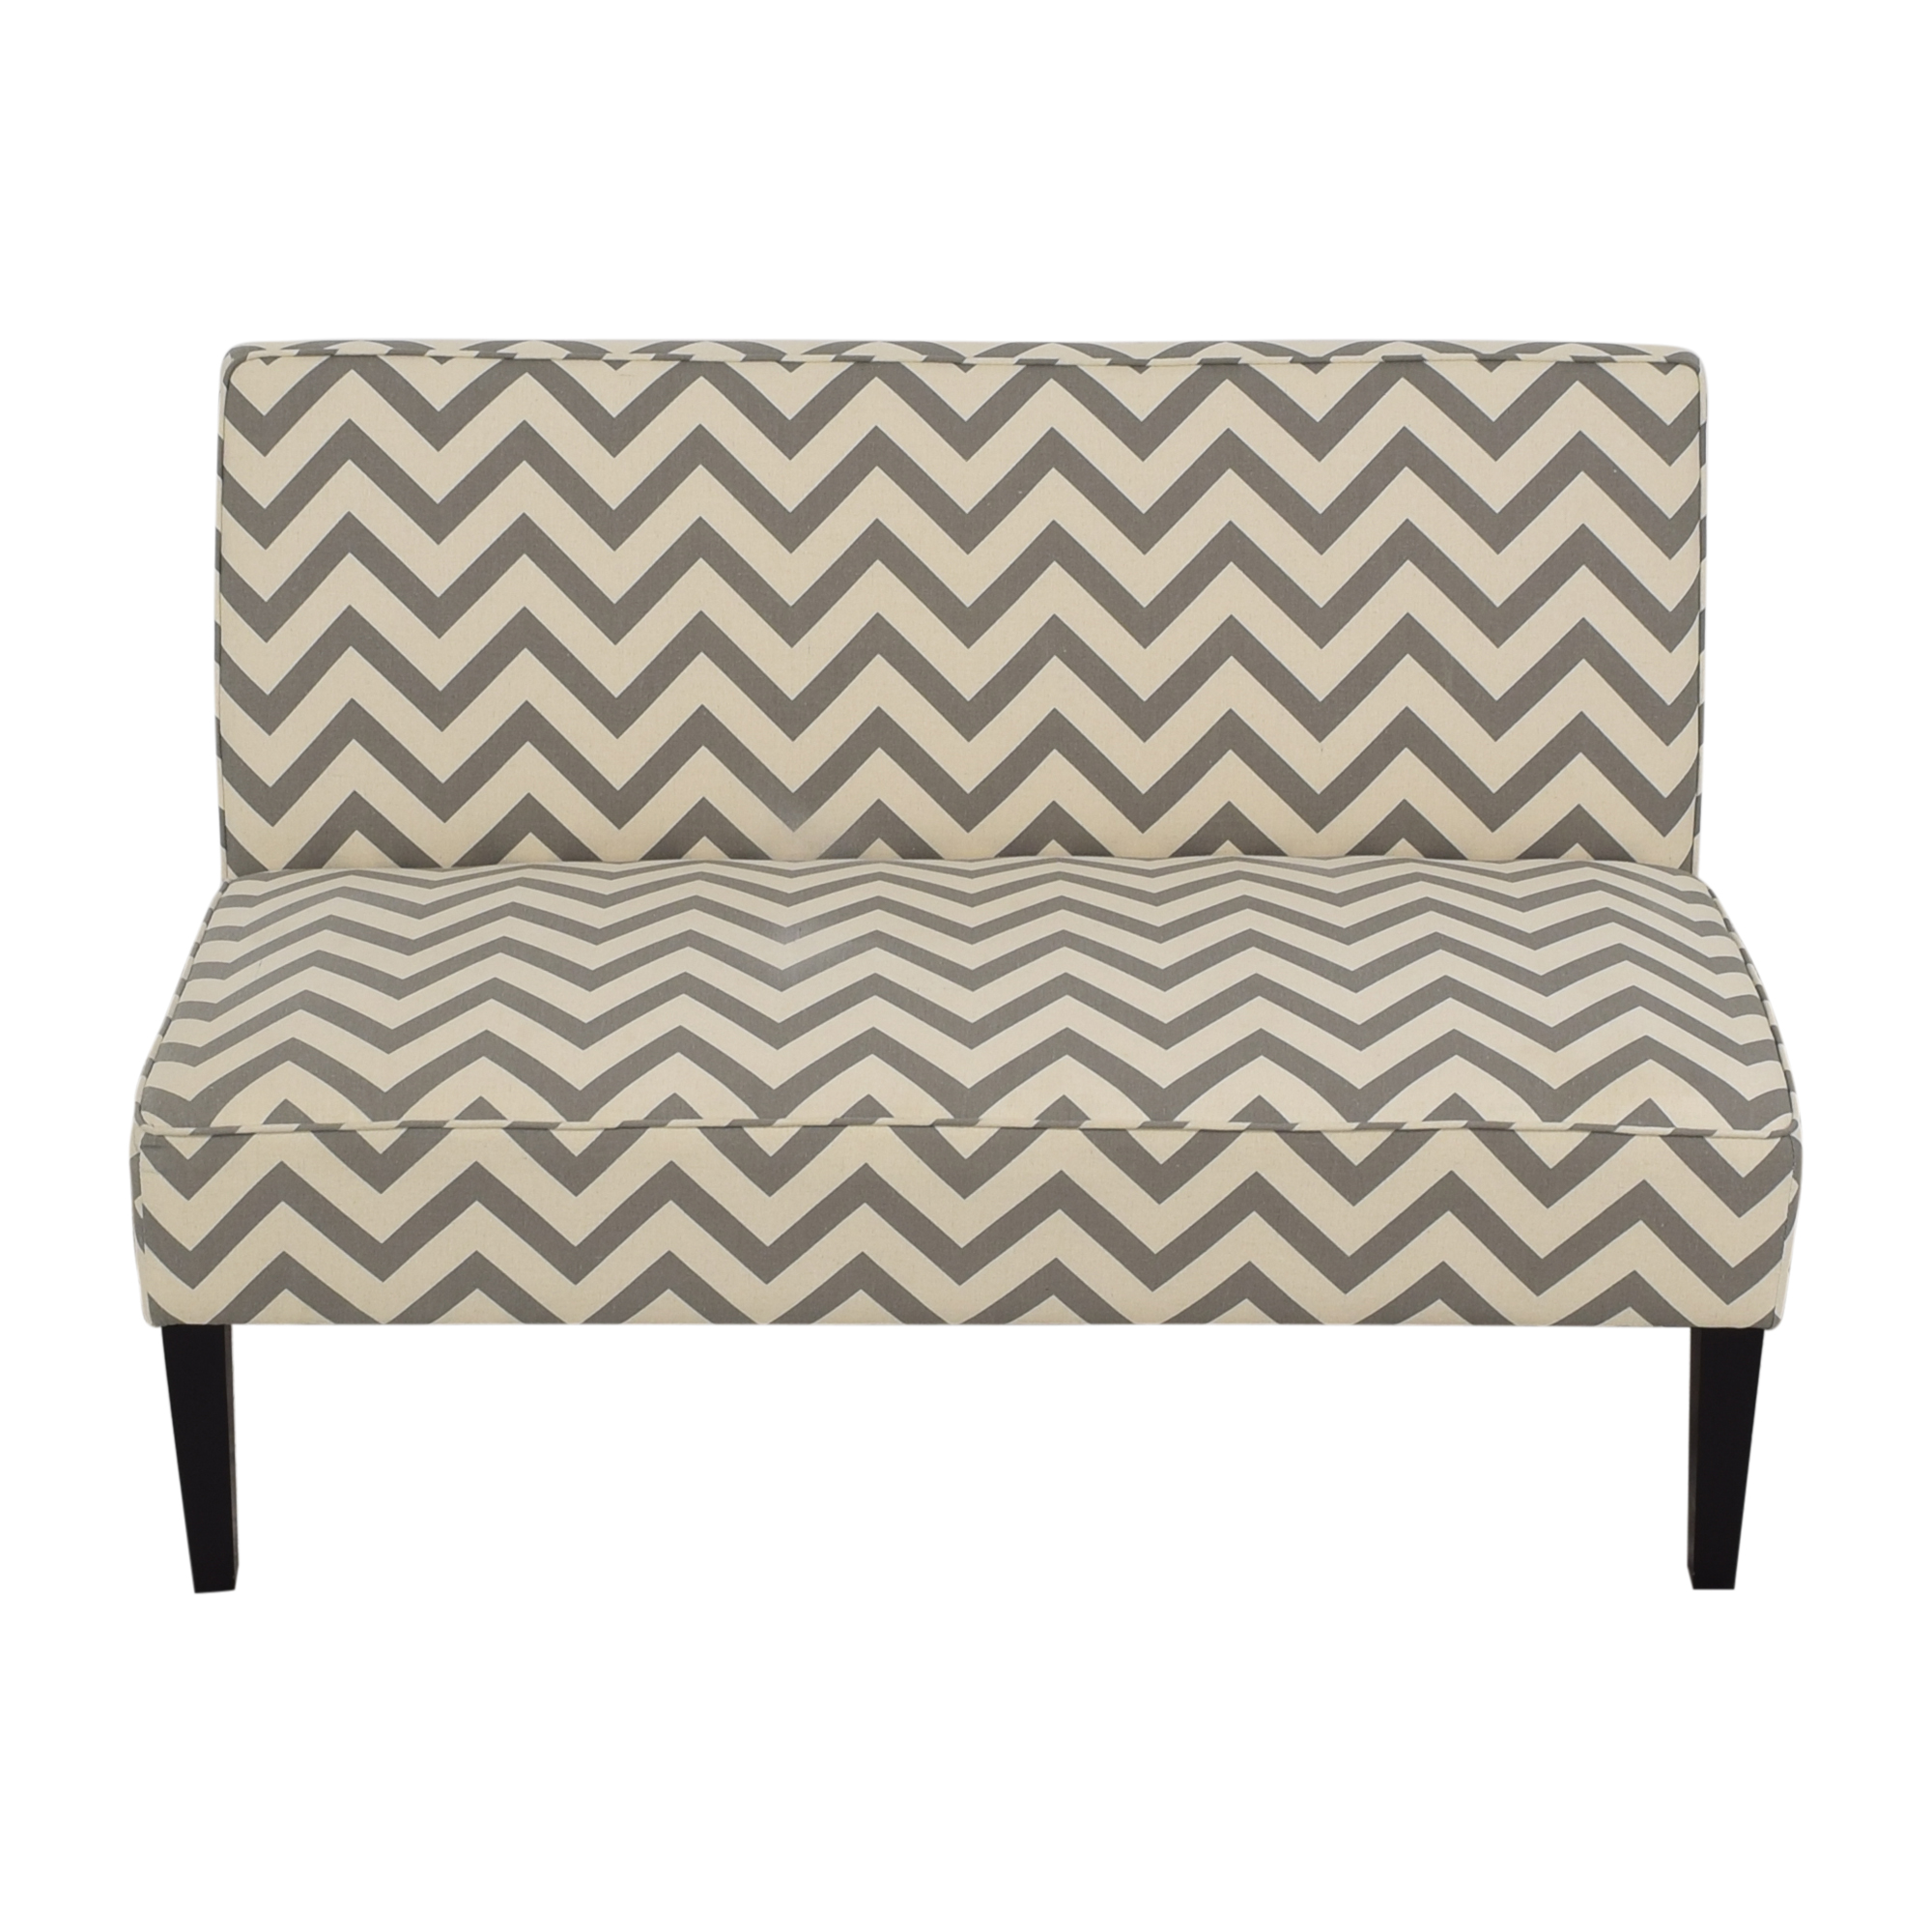 Noble House Upholstered Bench / Benches